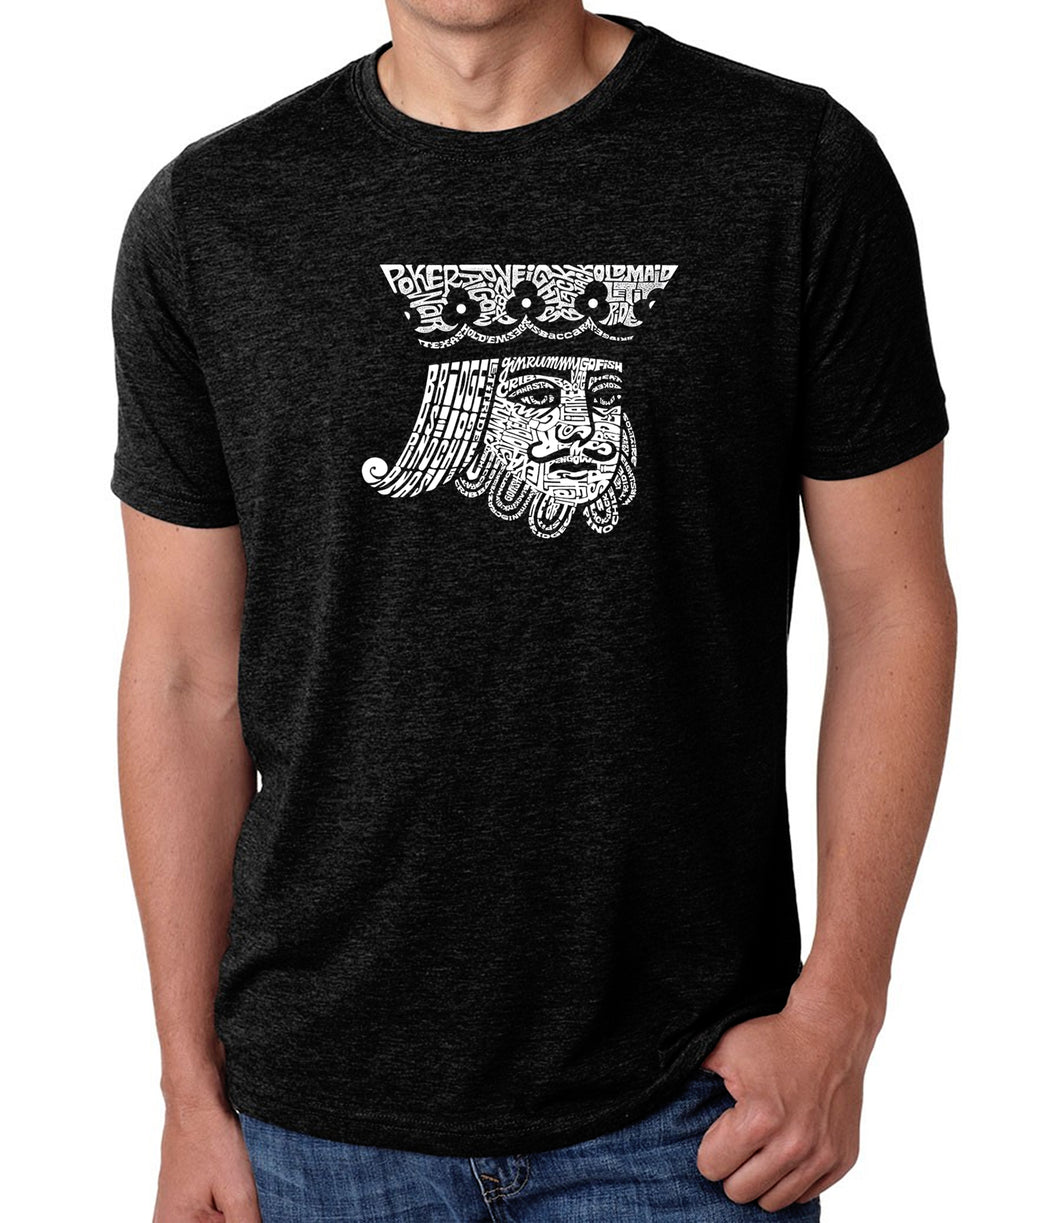 LA Pop Art Men's Premium Blend Word Art T-shirt - King of Spades